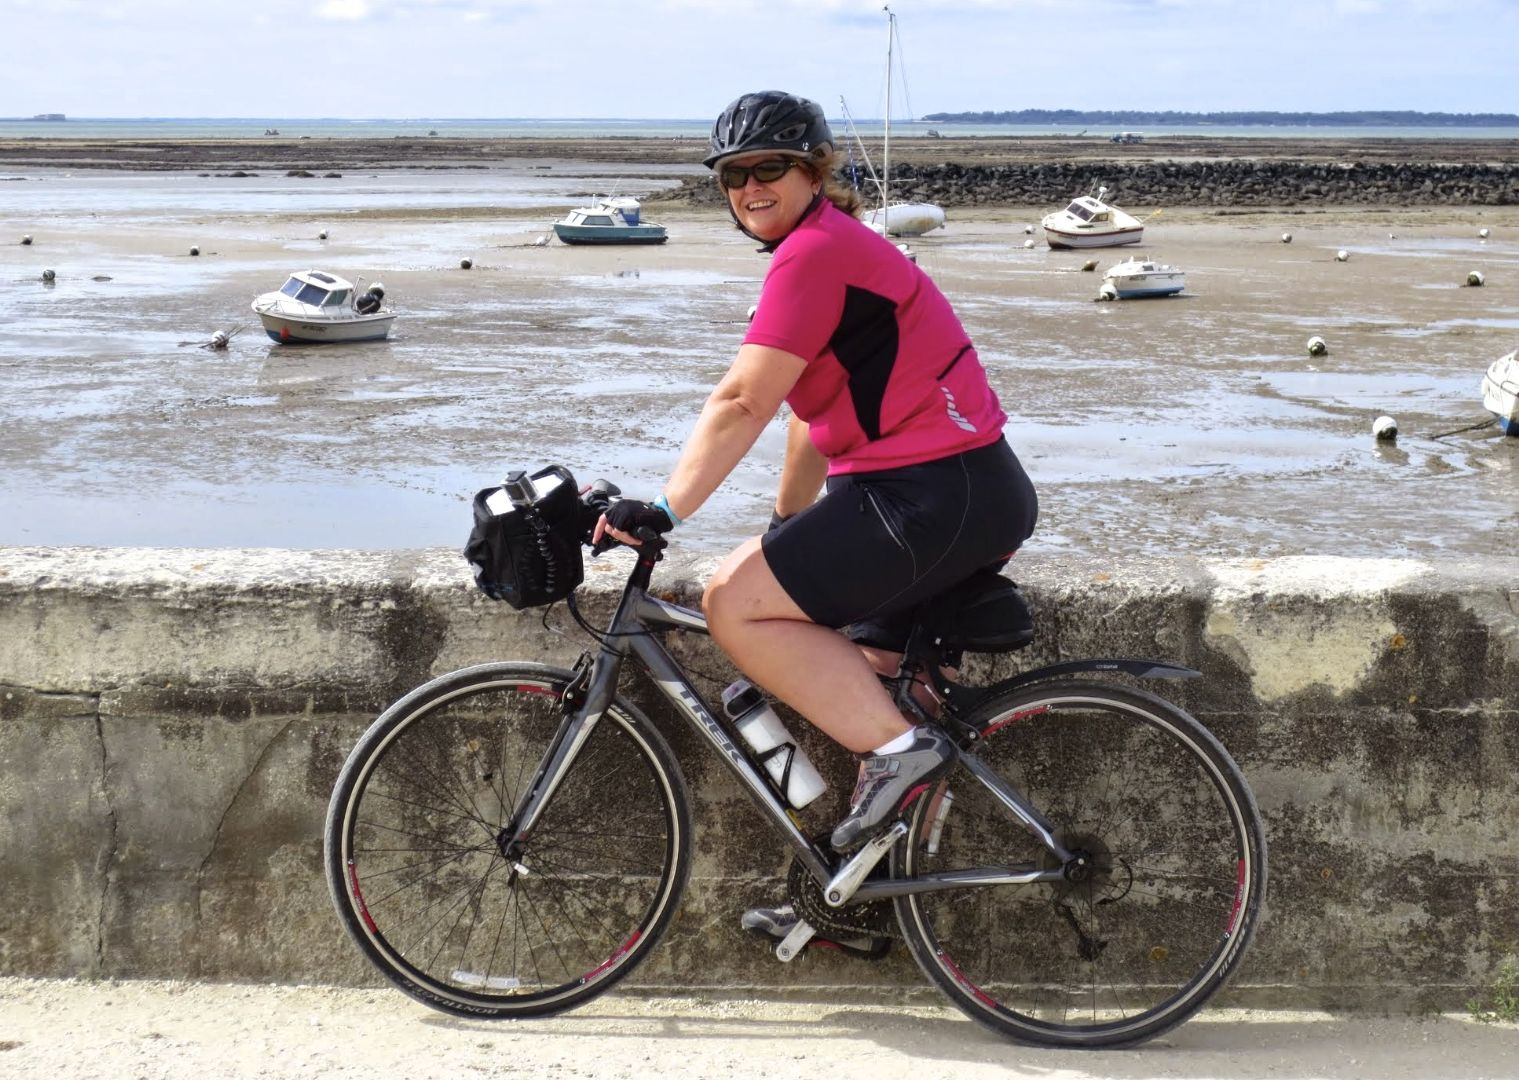 frenchatlanticcoastcycling3.jpg - France - Ile de Ré and the Atlantic Coast - Self-Guided Leisure Cycling Holiday - Leisure Cycling